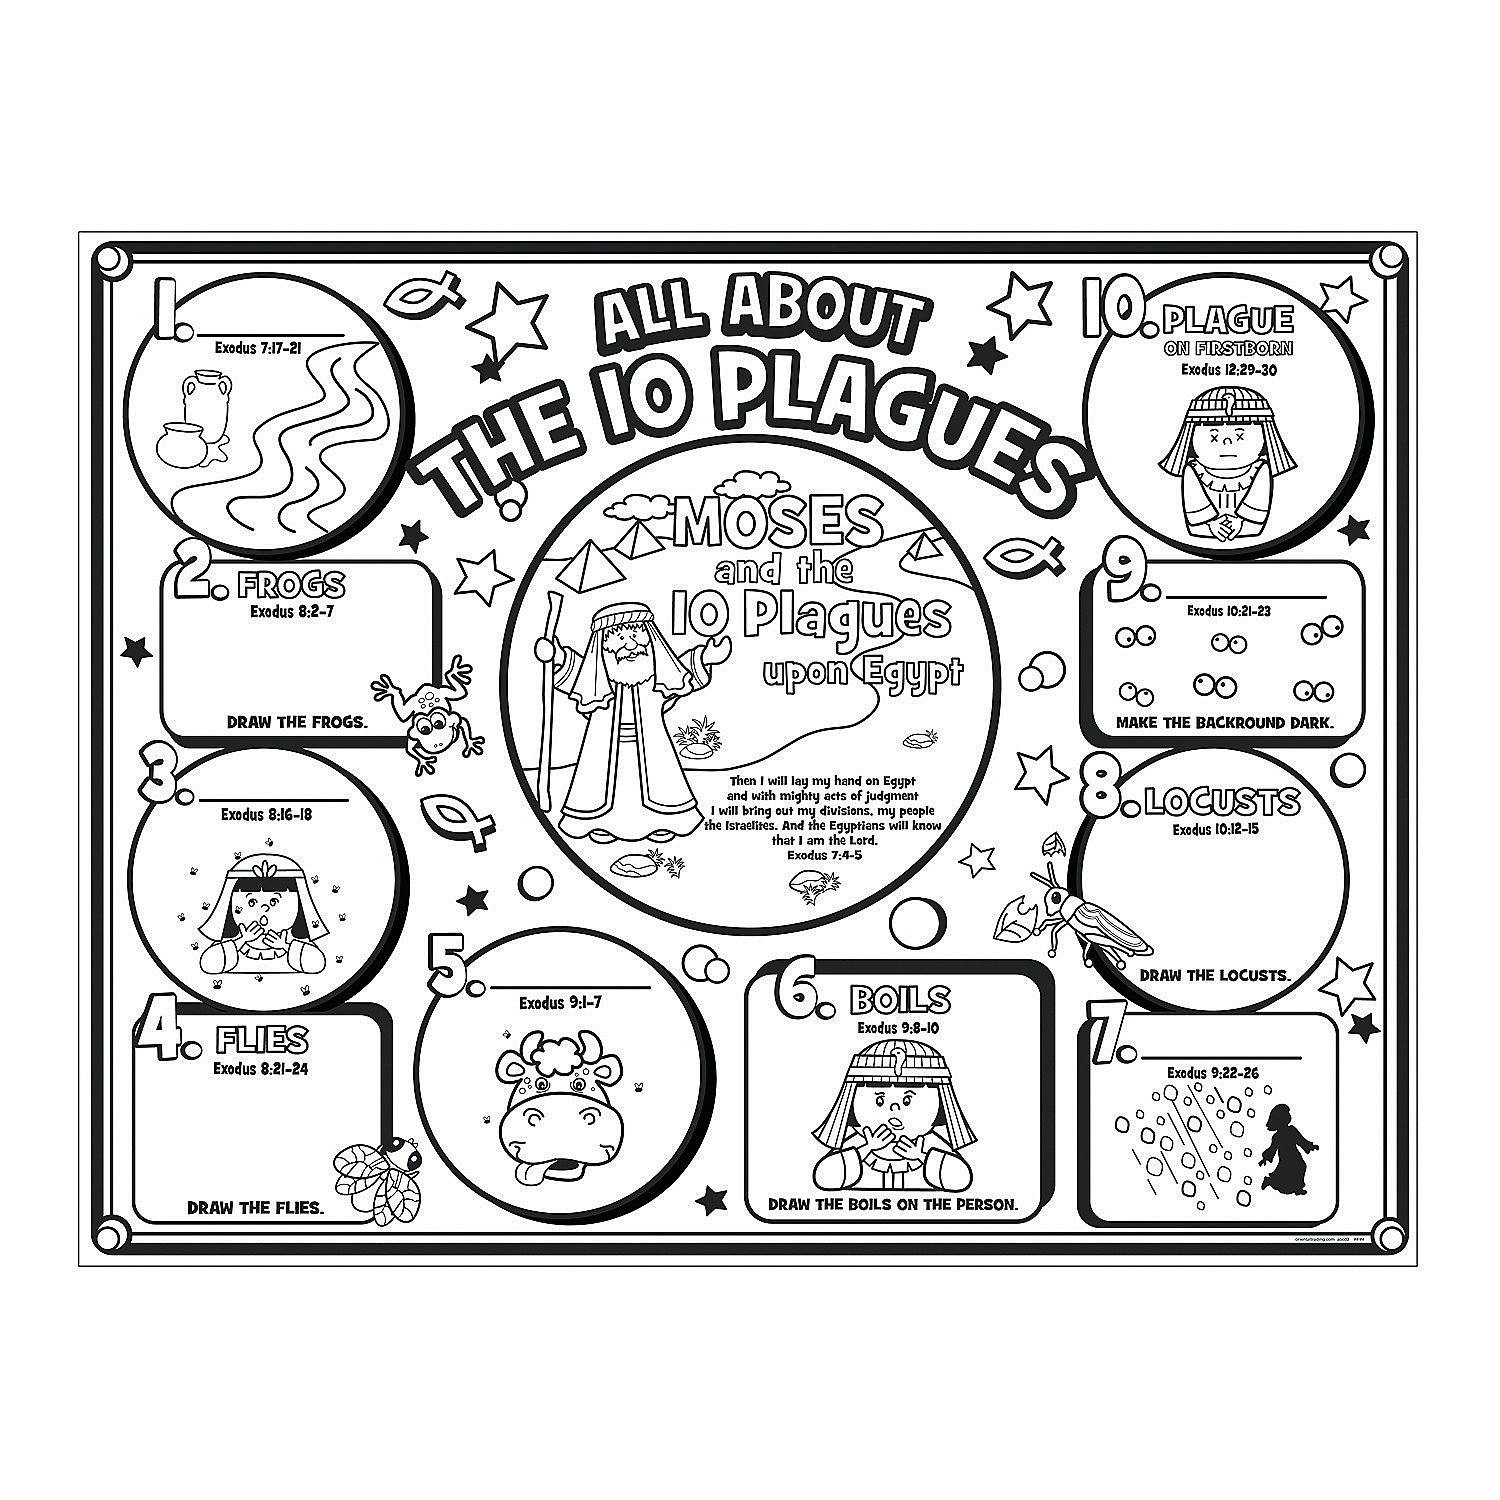 Color Your Own All About The 10 Plagues Posters Moses And The Plagues Coloring Pages